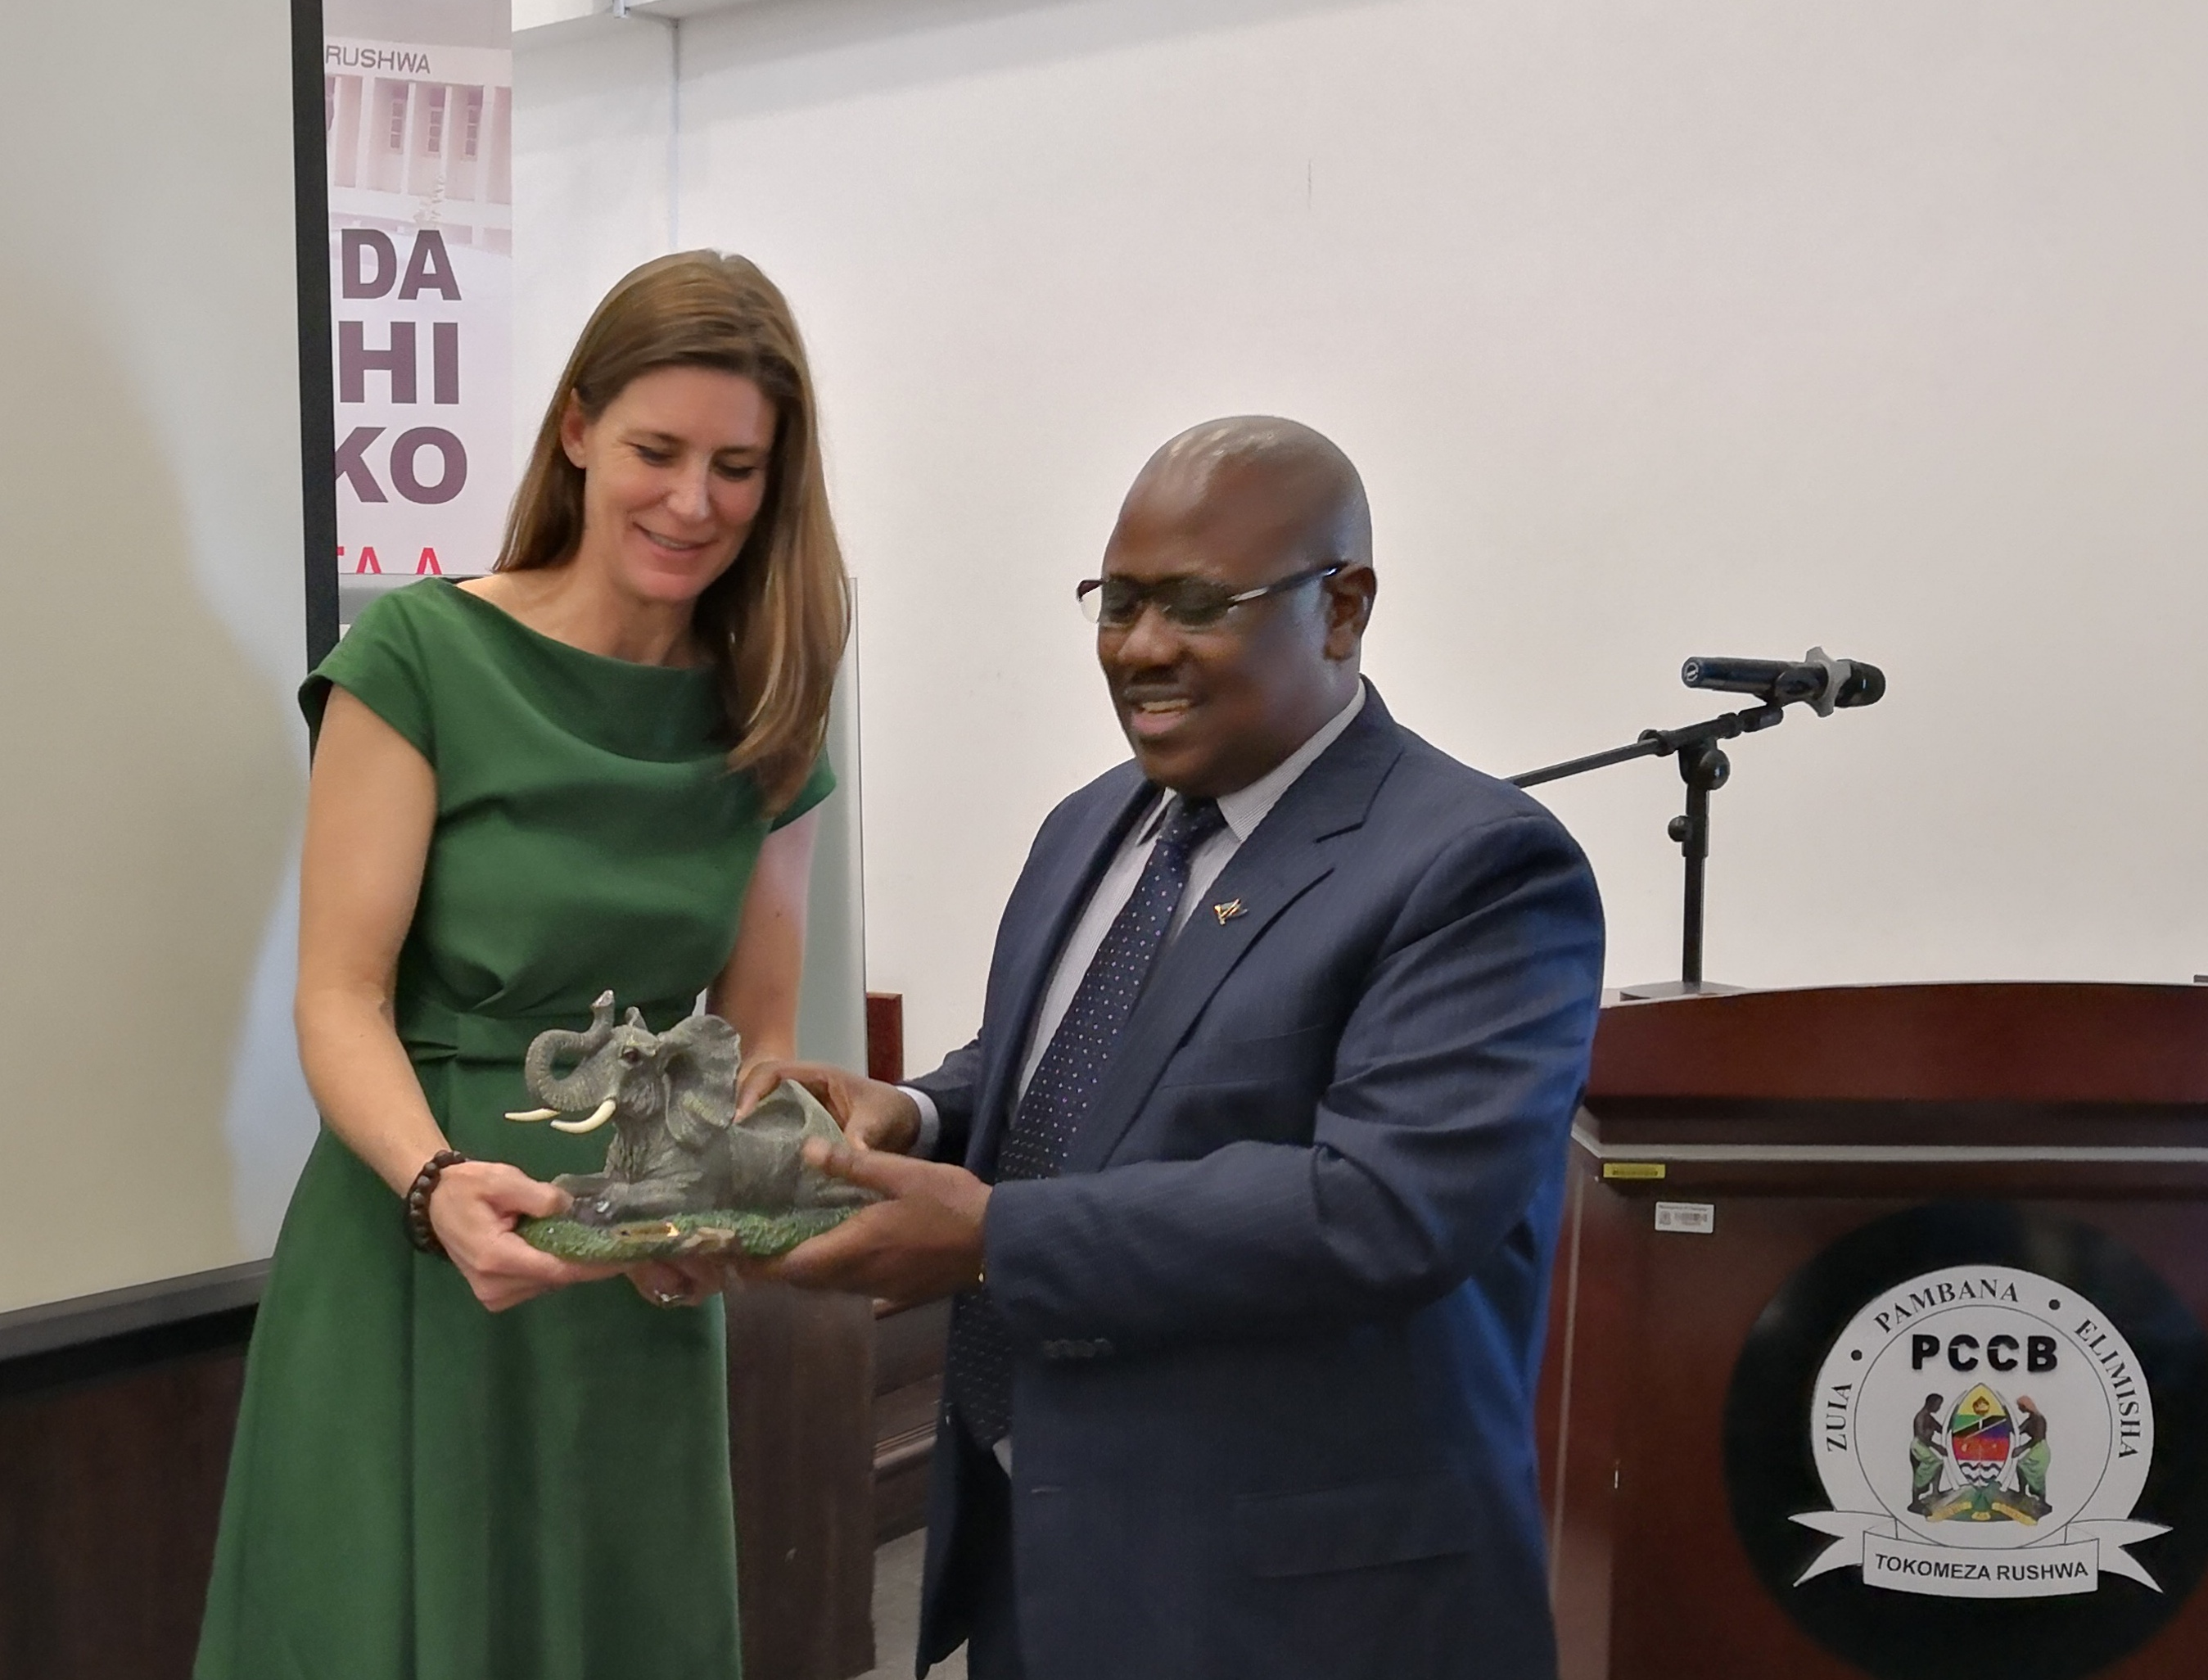 Gretta Fenner receives elephant sculpture from the Tanzanian PCCB